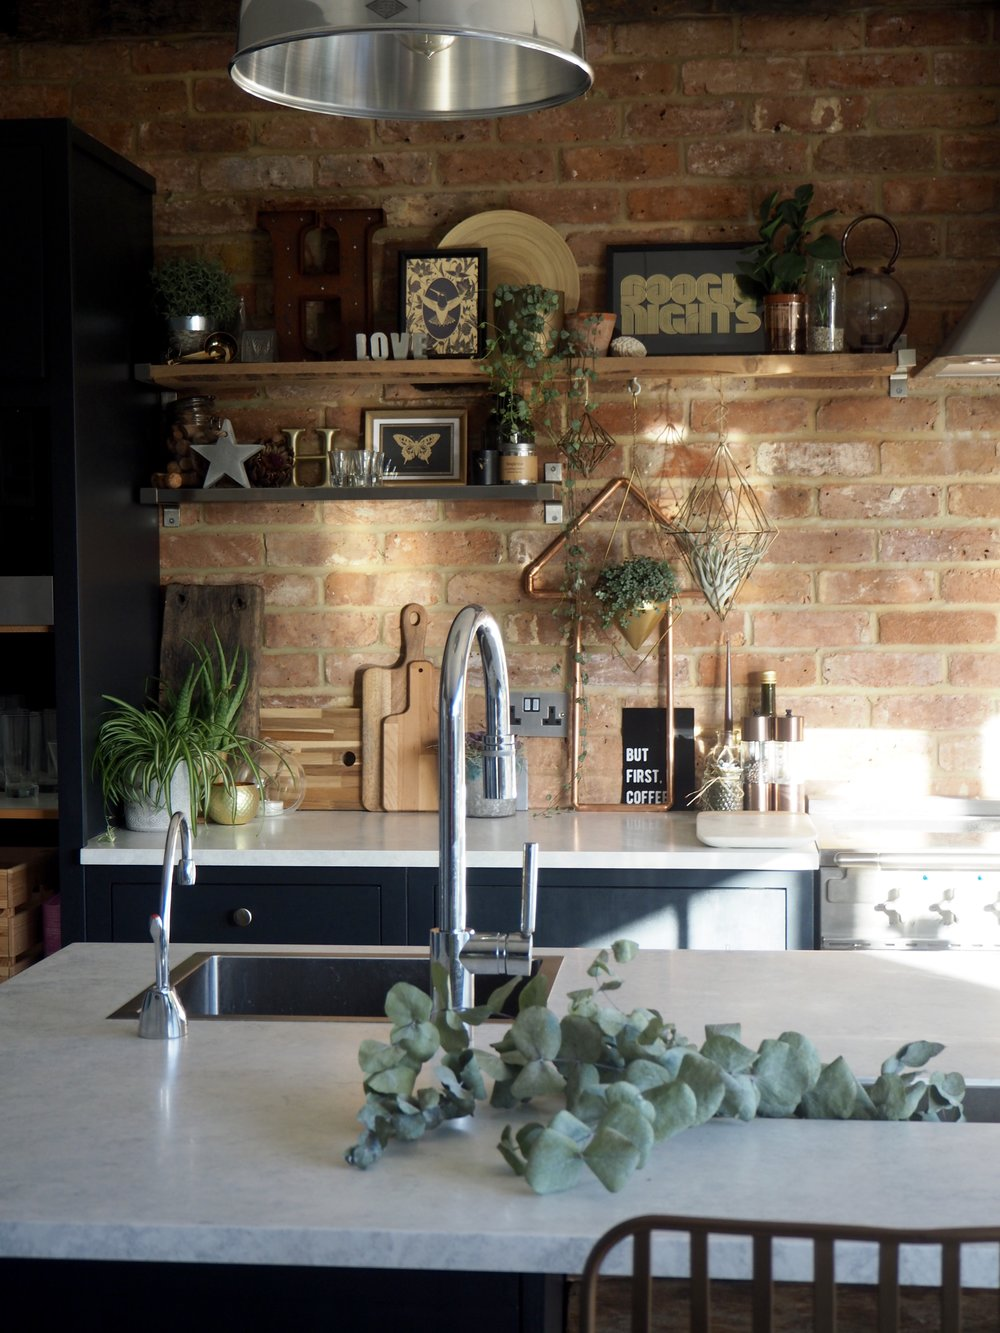 The Way The Metallics, Plants And Natural Textures Sit With The Brick On  The Shelves In The Kitchen Make It One Of My Favourite Spots In My Home.